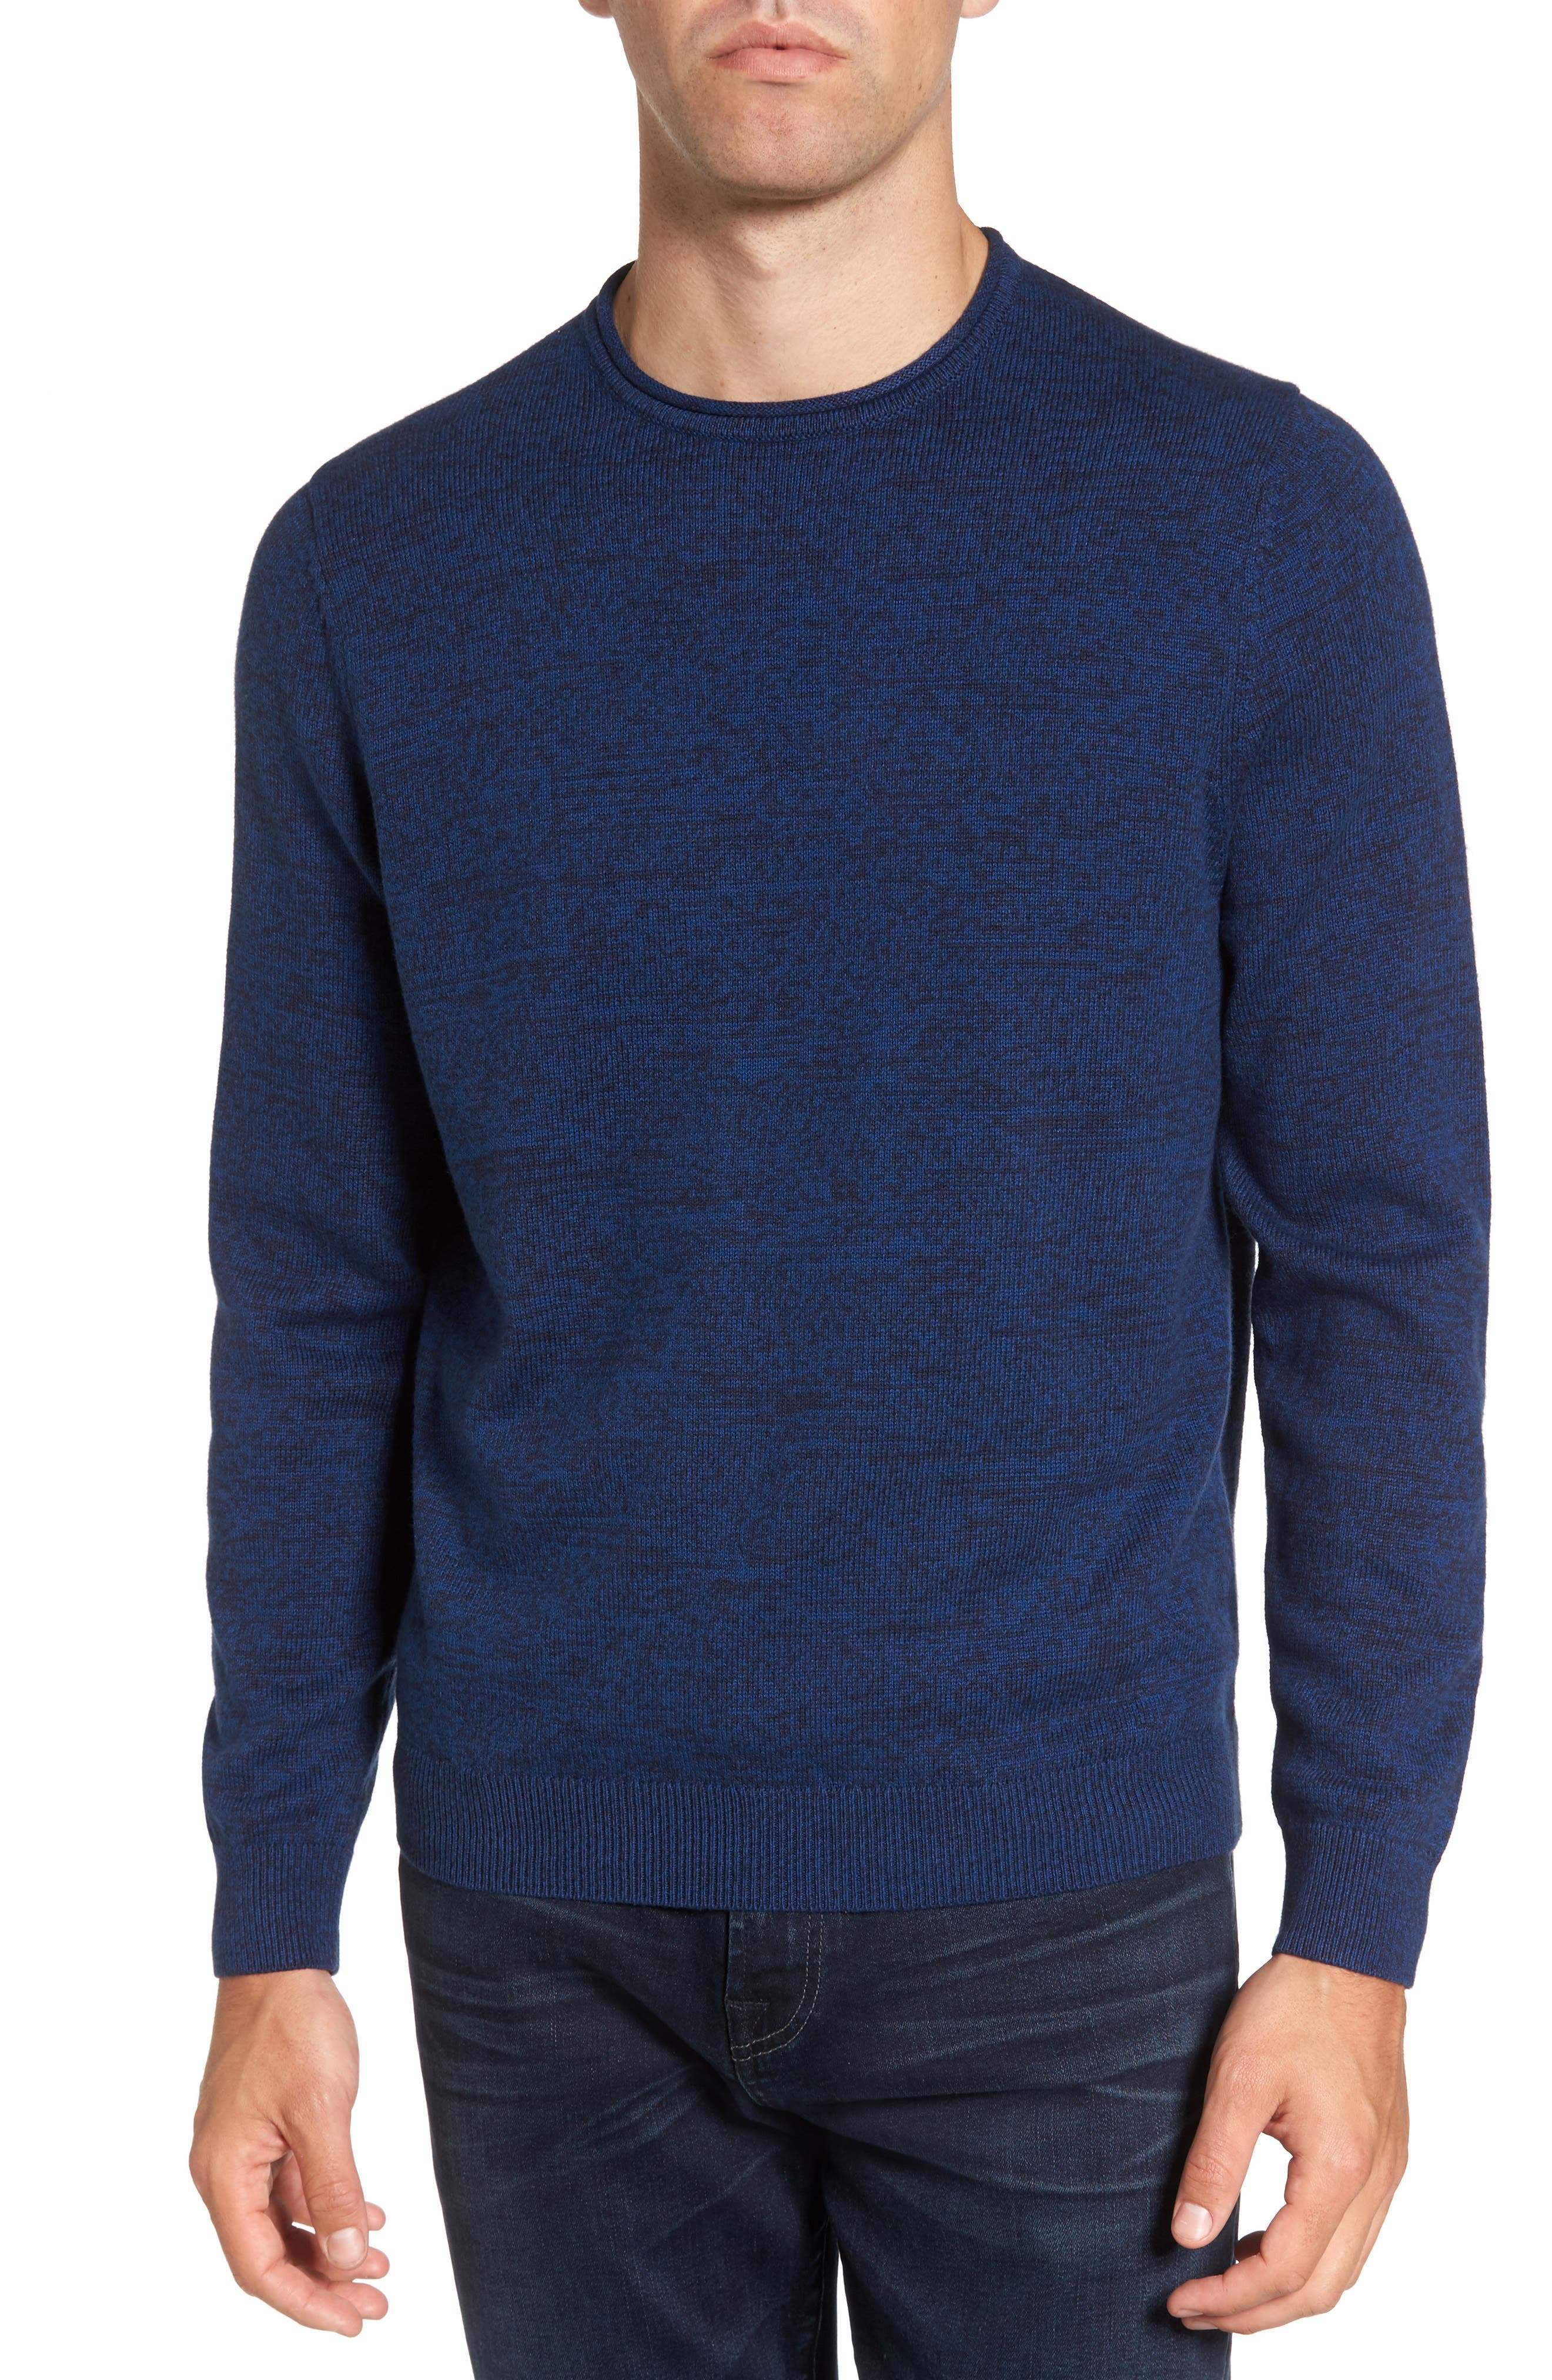 Cotton & Cashmere Roll Neck Sweater,                         Main,                         color, Navy Medieval Marl